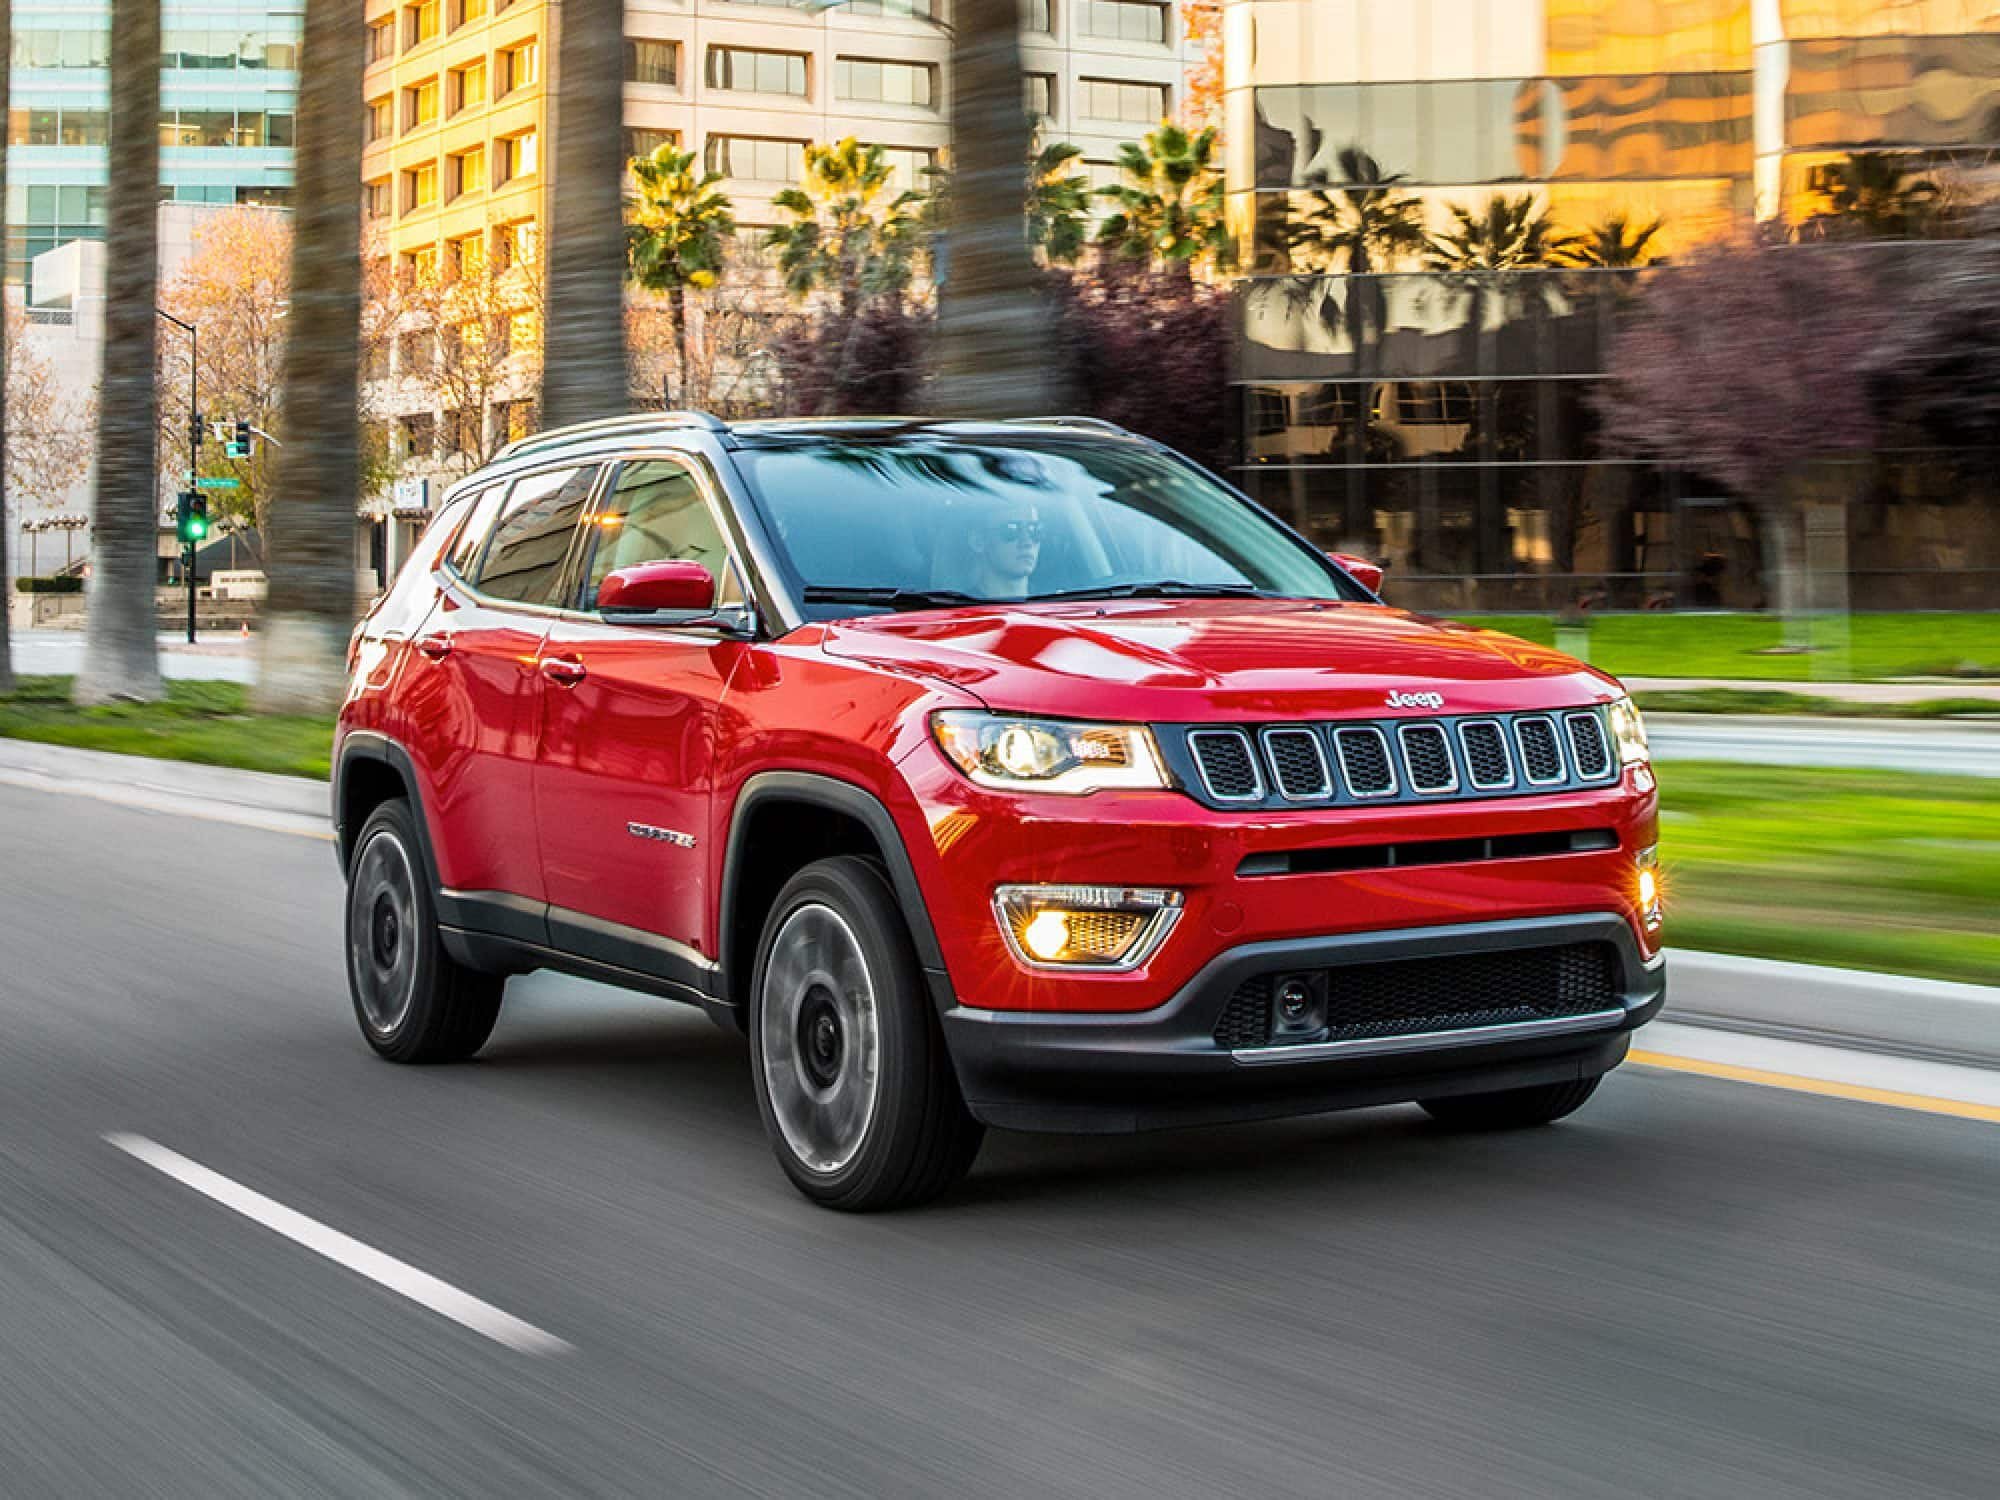 used jeep compass for sale near charlottesville va fredericksburg va buy a jeep compass in. Black Bedroom Furniture Sets. Home Design Ideas